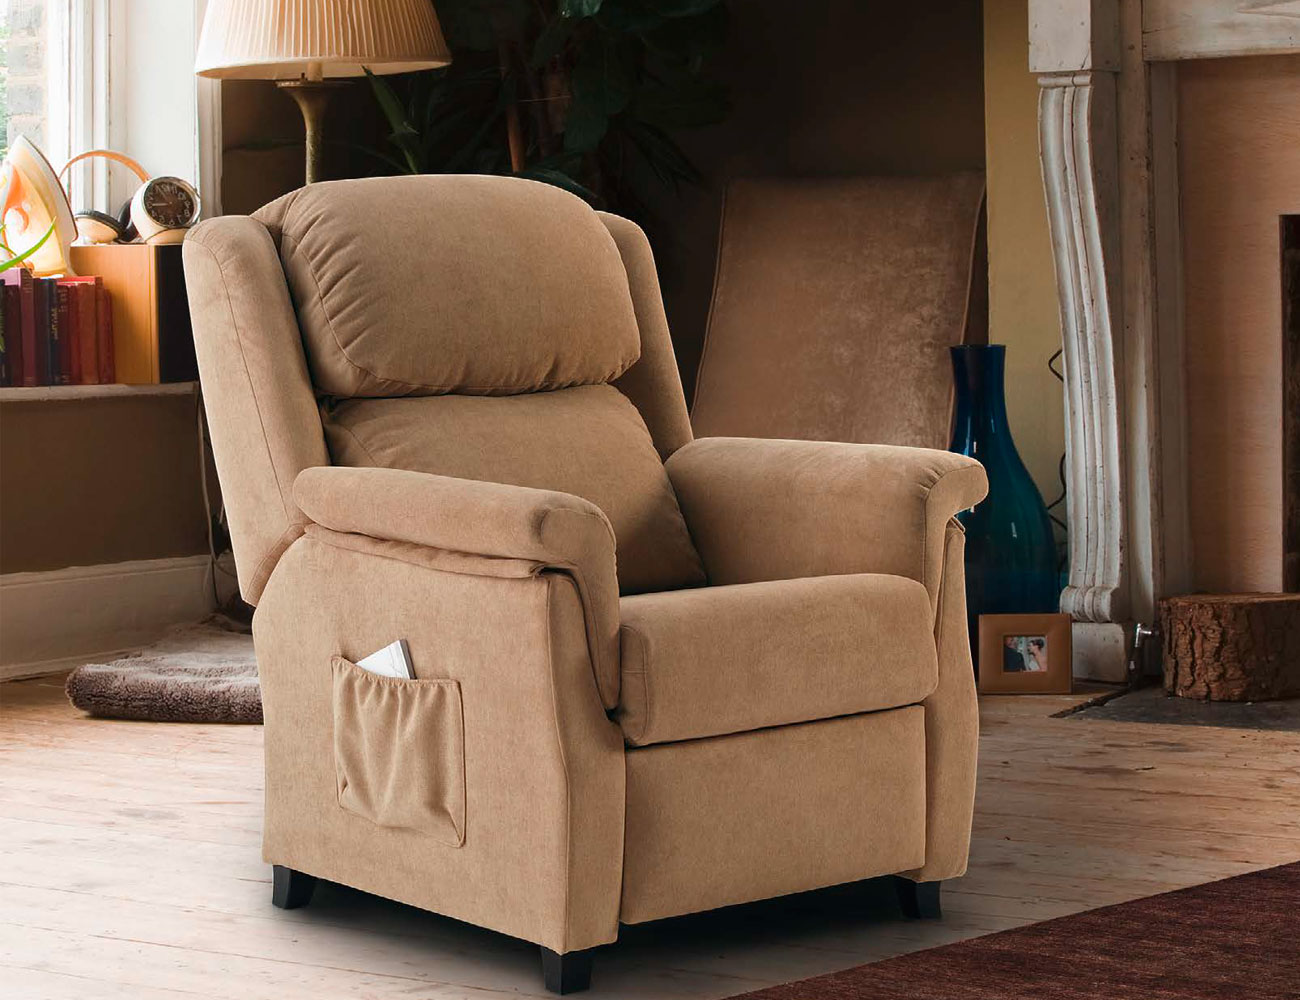 Sillon relax manual bianca 15